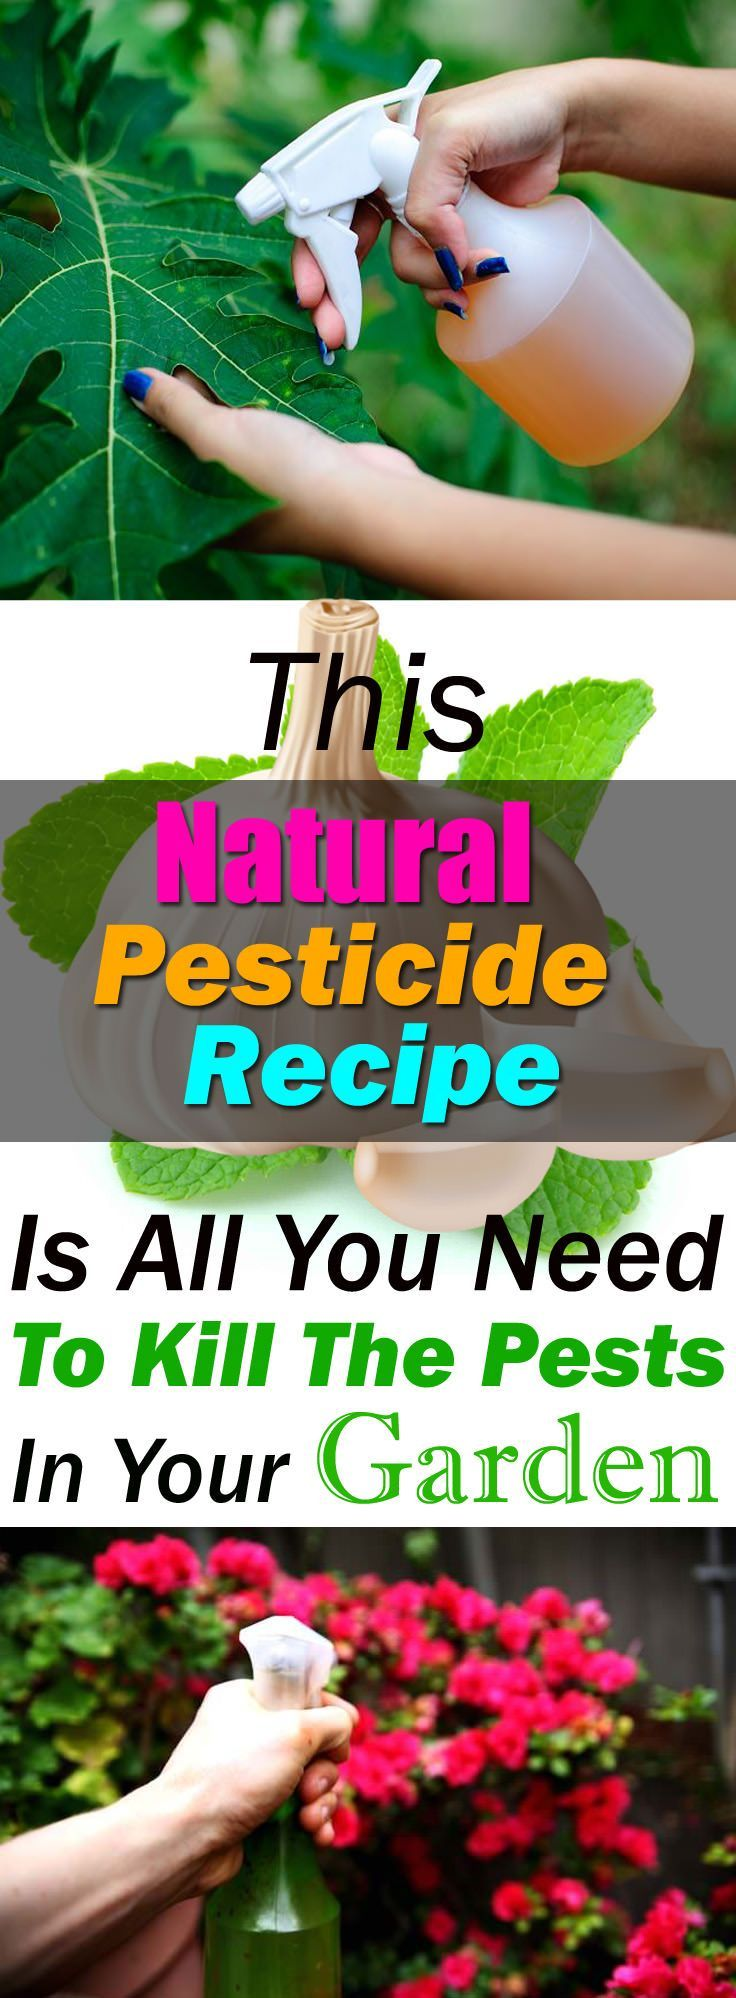 Amazing Natural Pesticide Recipe Is So Effective You Can Get Rid Of Pests In No Time This homemade pesticide recipe is CHEMICAL FREE, all natural and easy to prepare. 5 effective ingredients together and your plants will be free of pests.This homemade pesticide recipe is CHEMICAL FREE, all natural and easy to prepare. 5 effective ingredients together and...